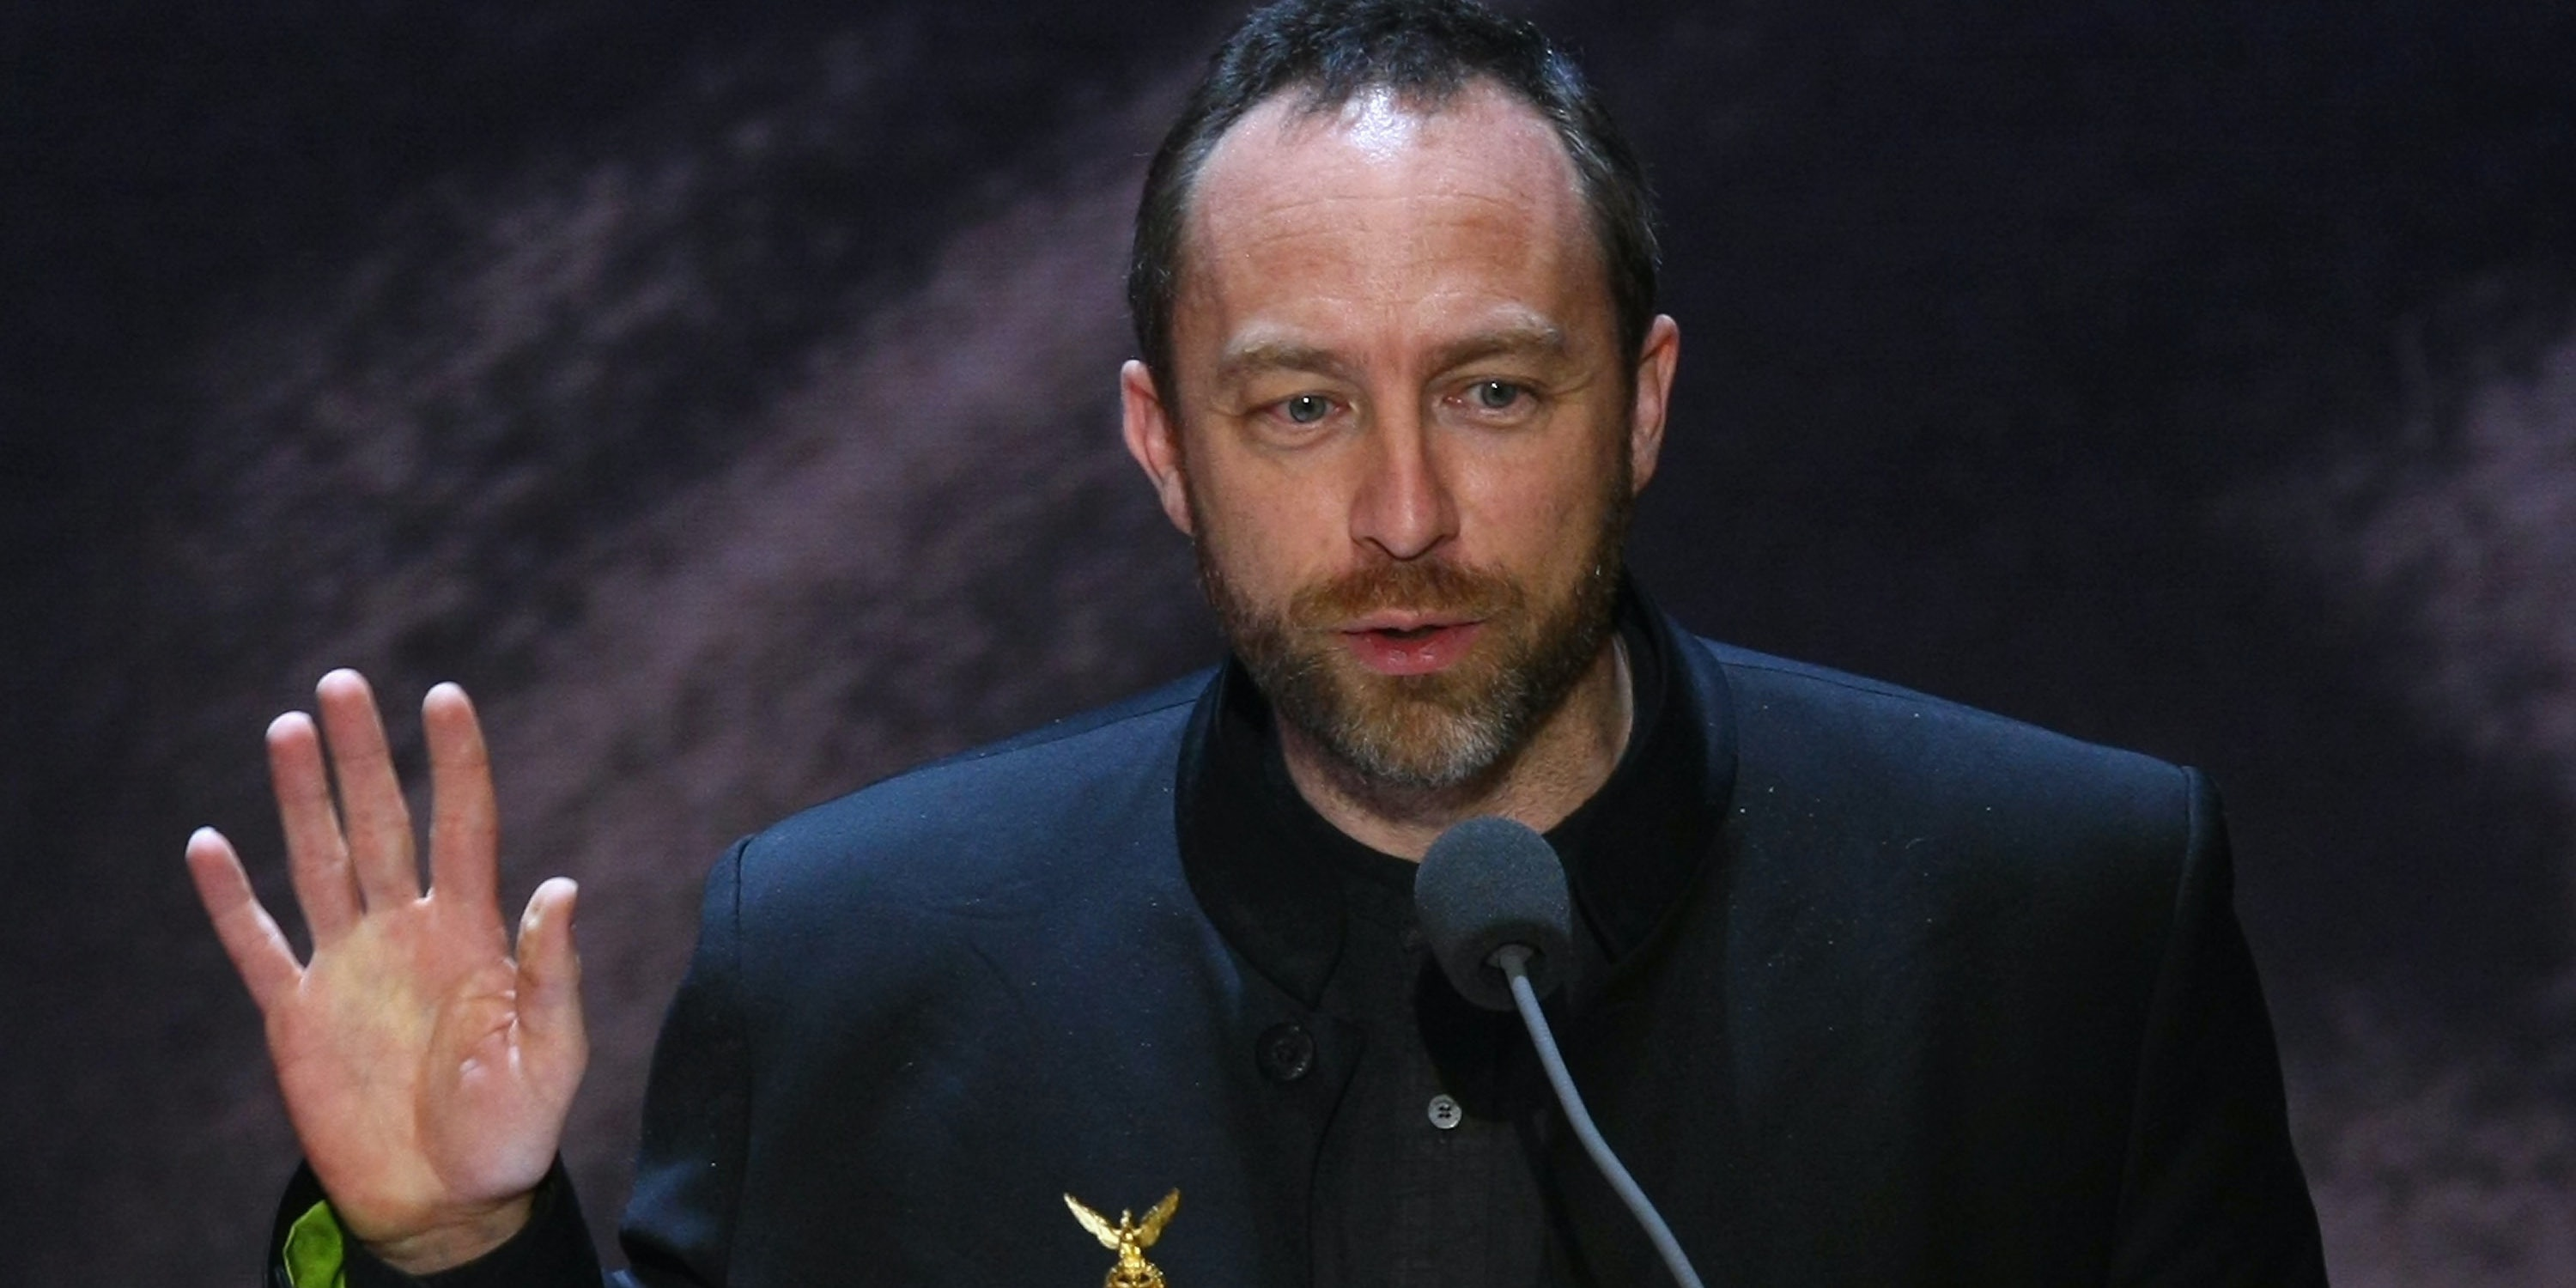 Wikipedia founder Jimmy Wales speaks after receiving a Quadriga Award for innovation in Berlin, Germany.